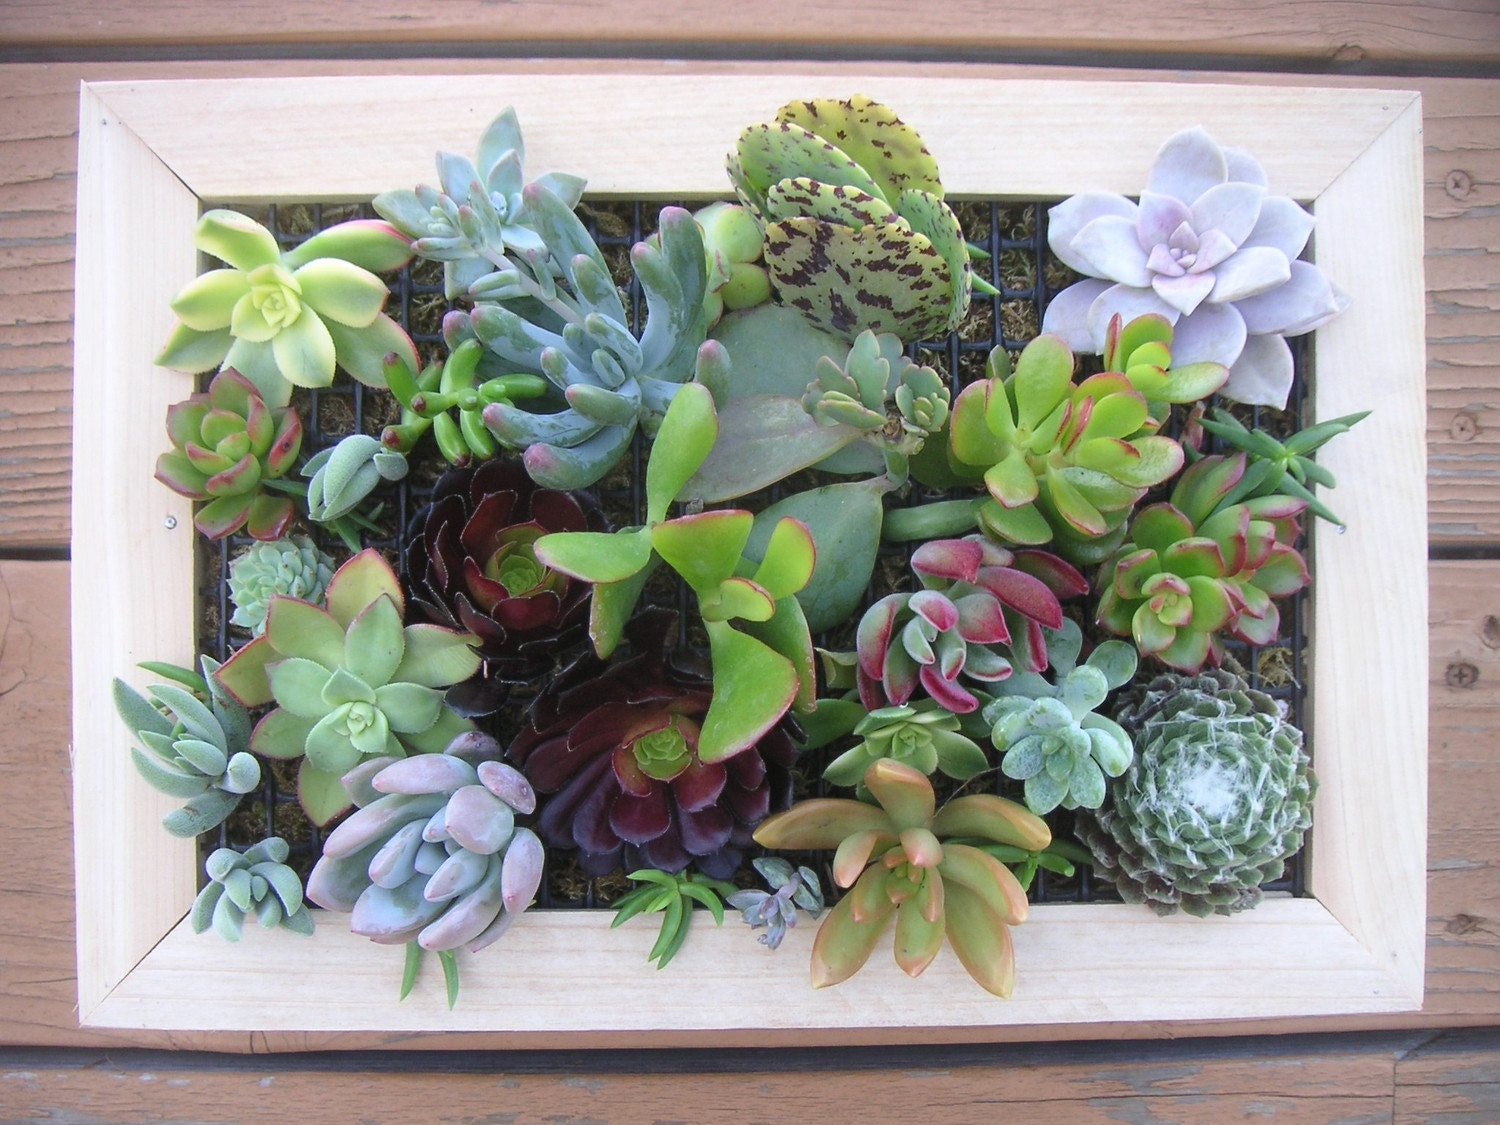 Glamorous 25 Succulent Wall Art Inspiration Of Growing A Vertical